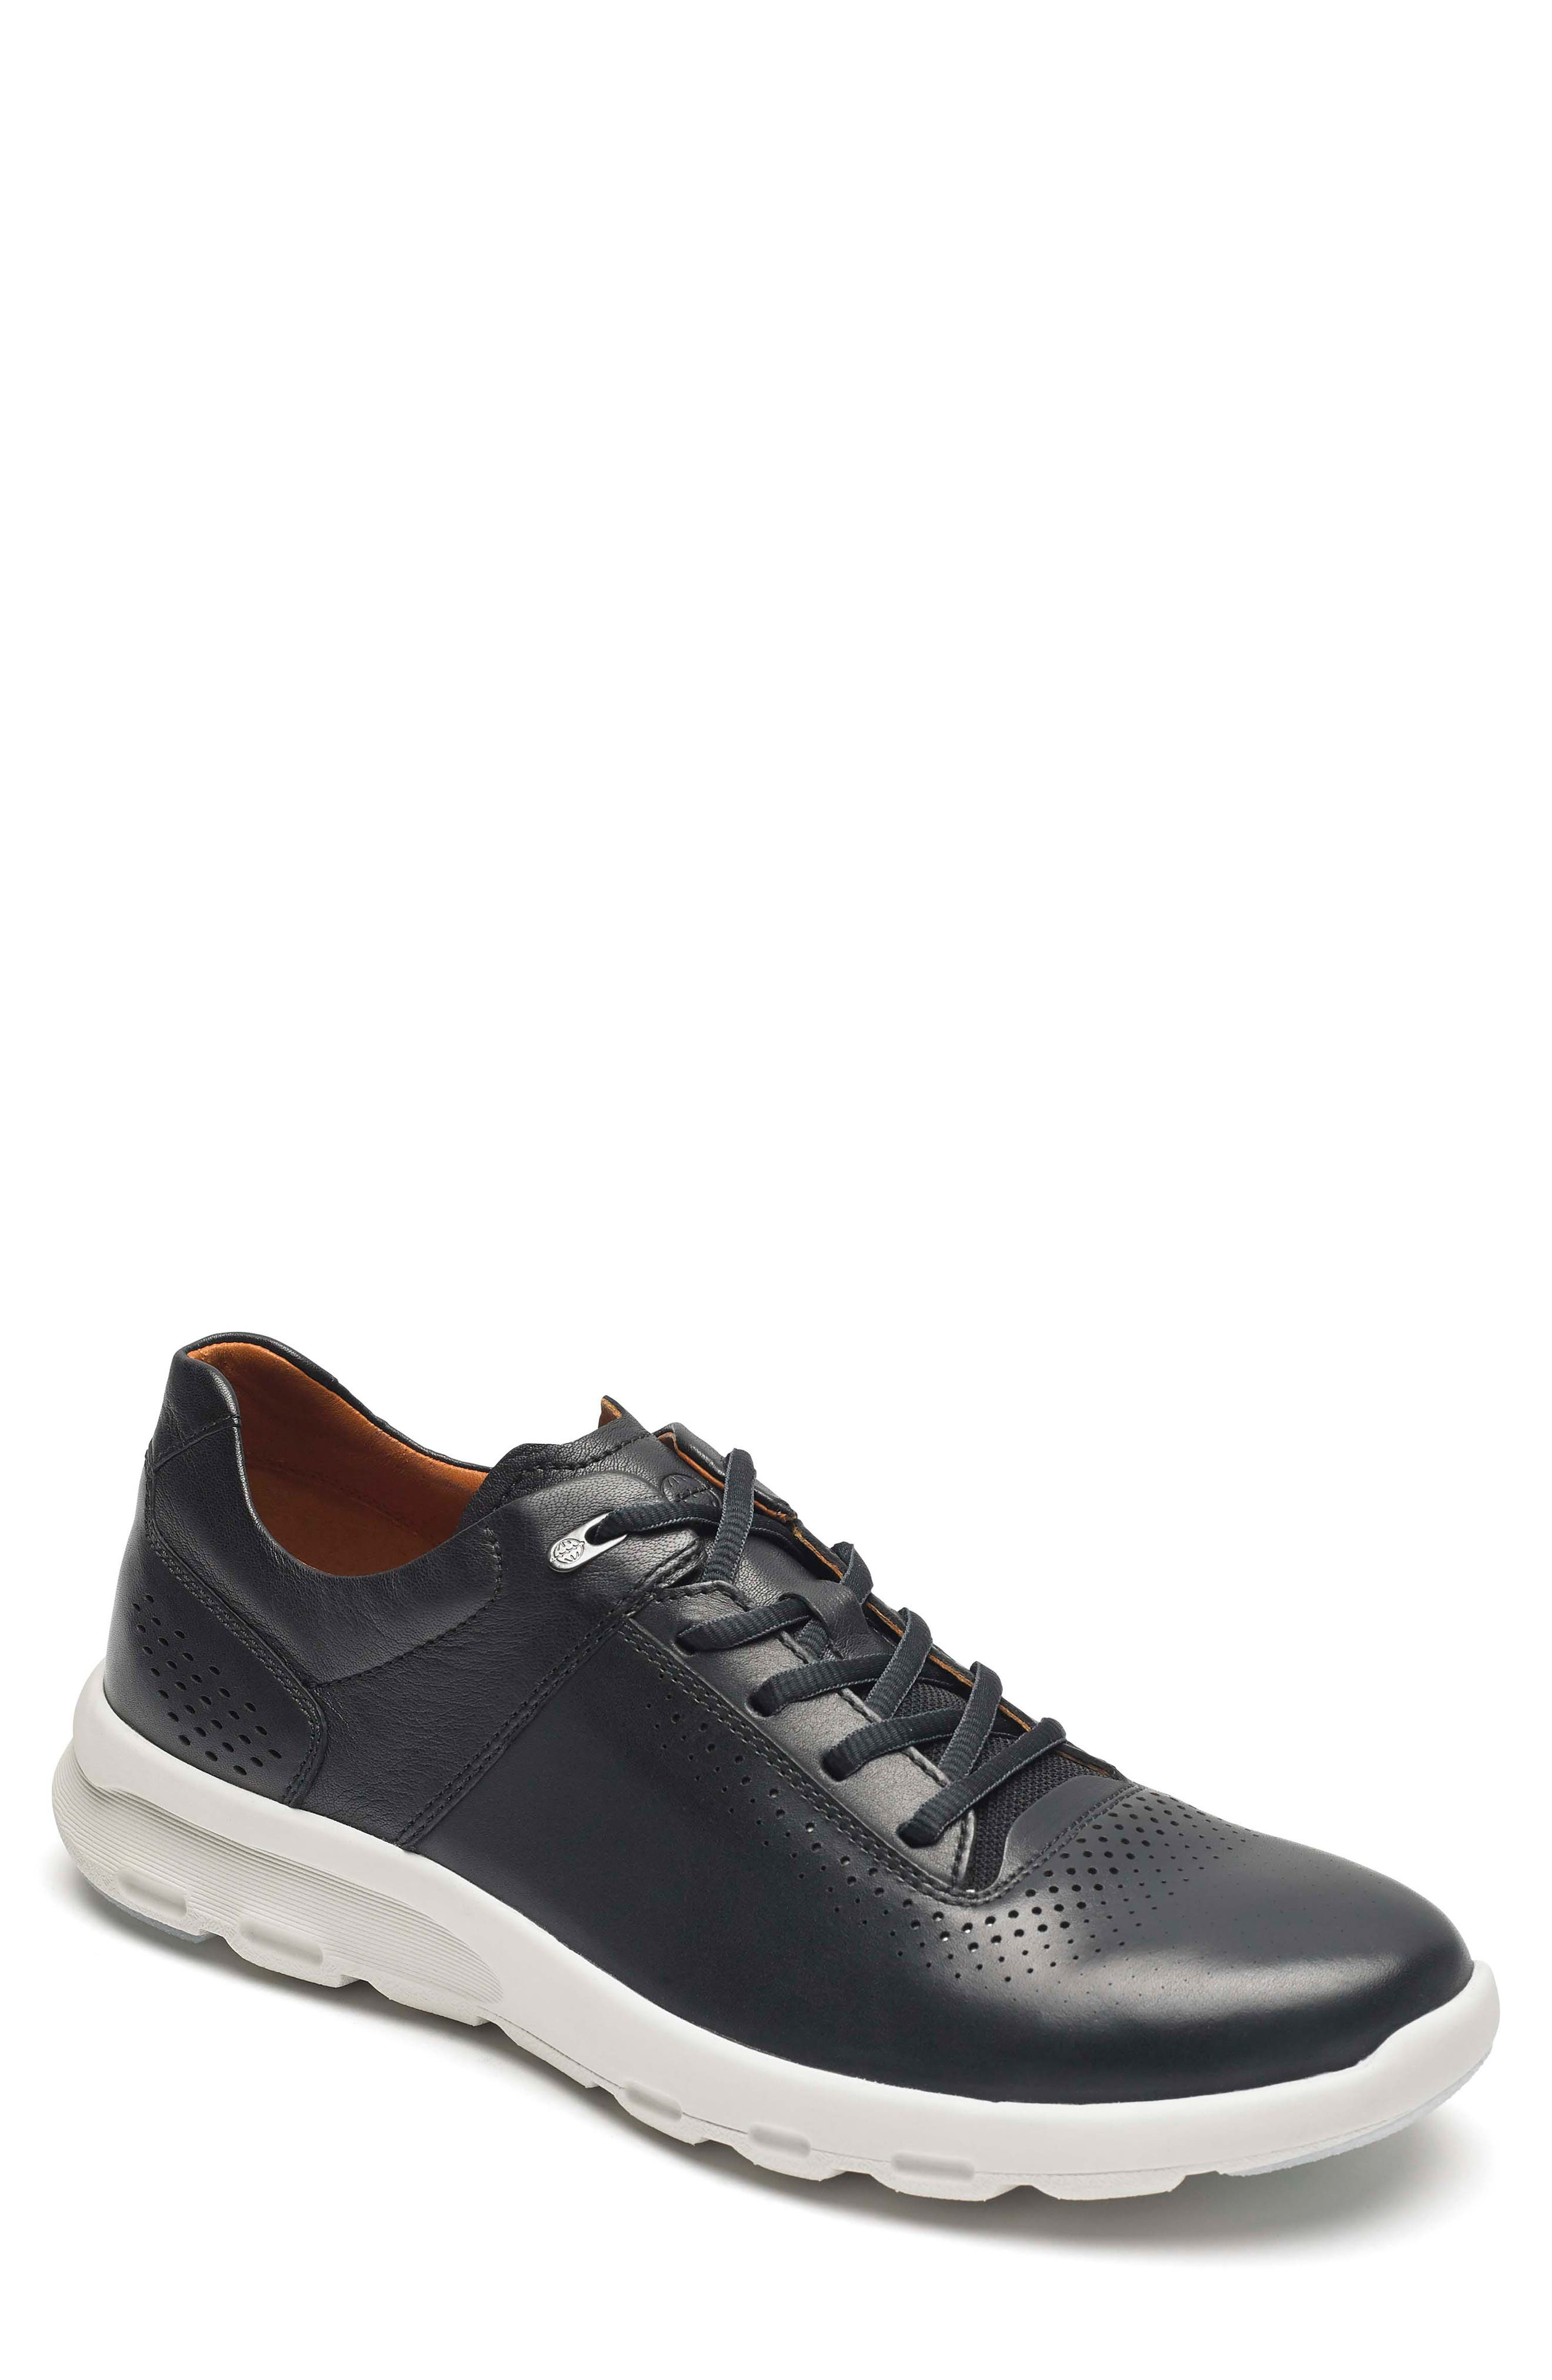 Let's Walk<sup>®</sup> Sneaker,                         Main,                         color, BLACK LEATHER